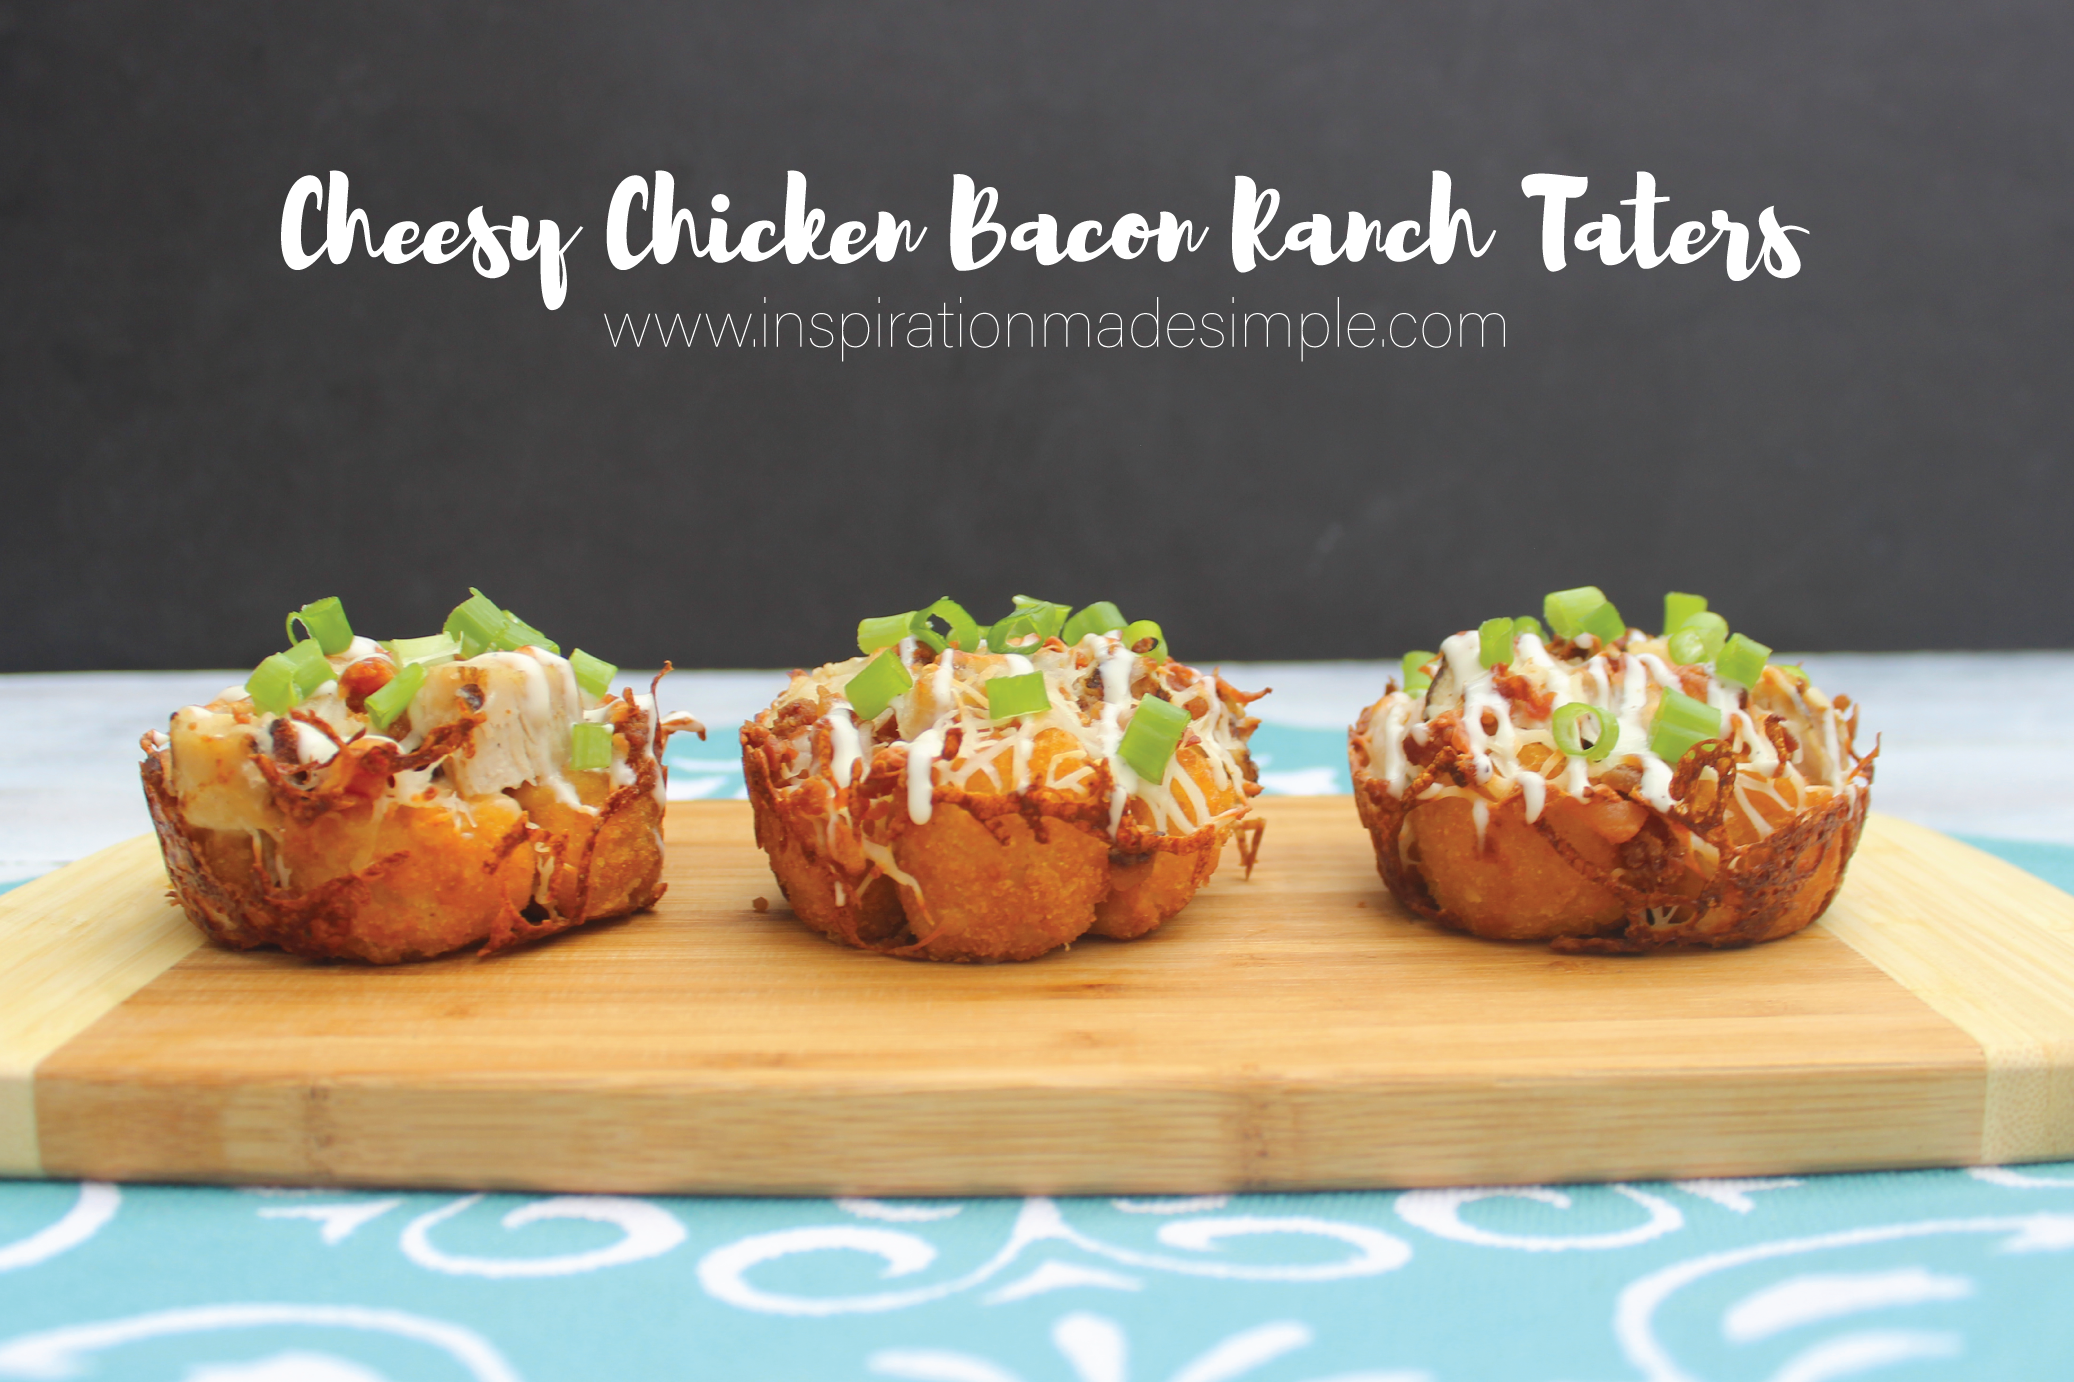 Cheesy Chicken Bacon Ranch Taters